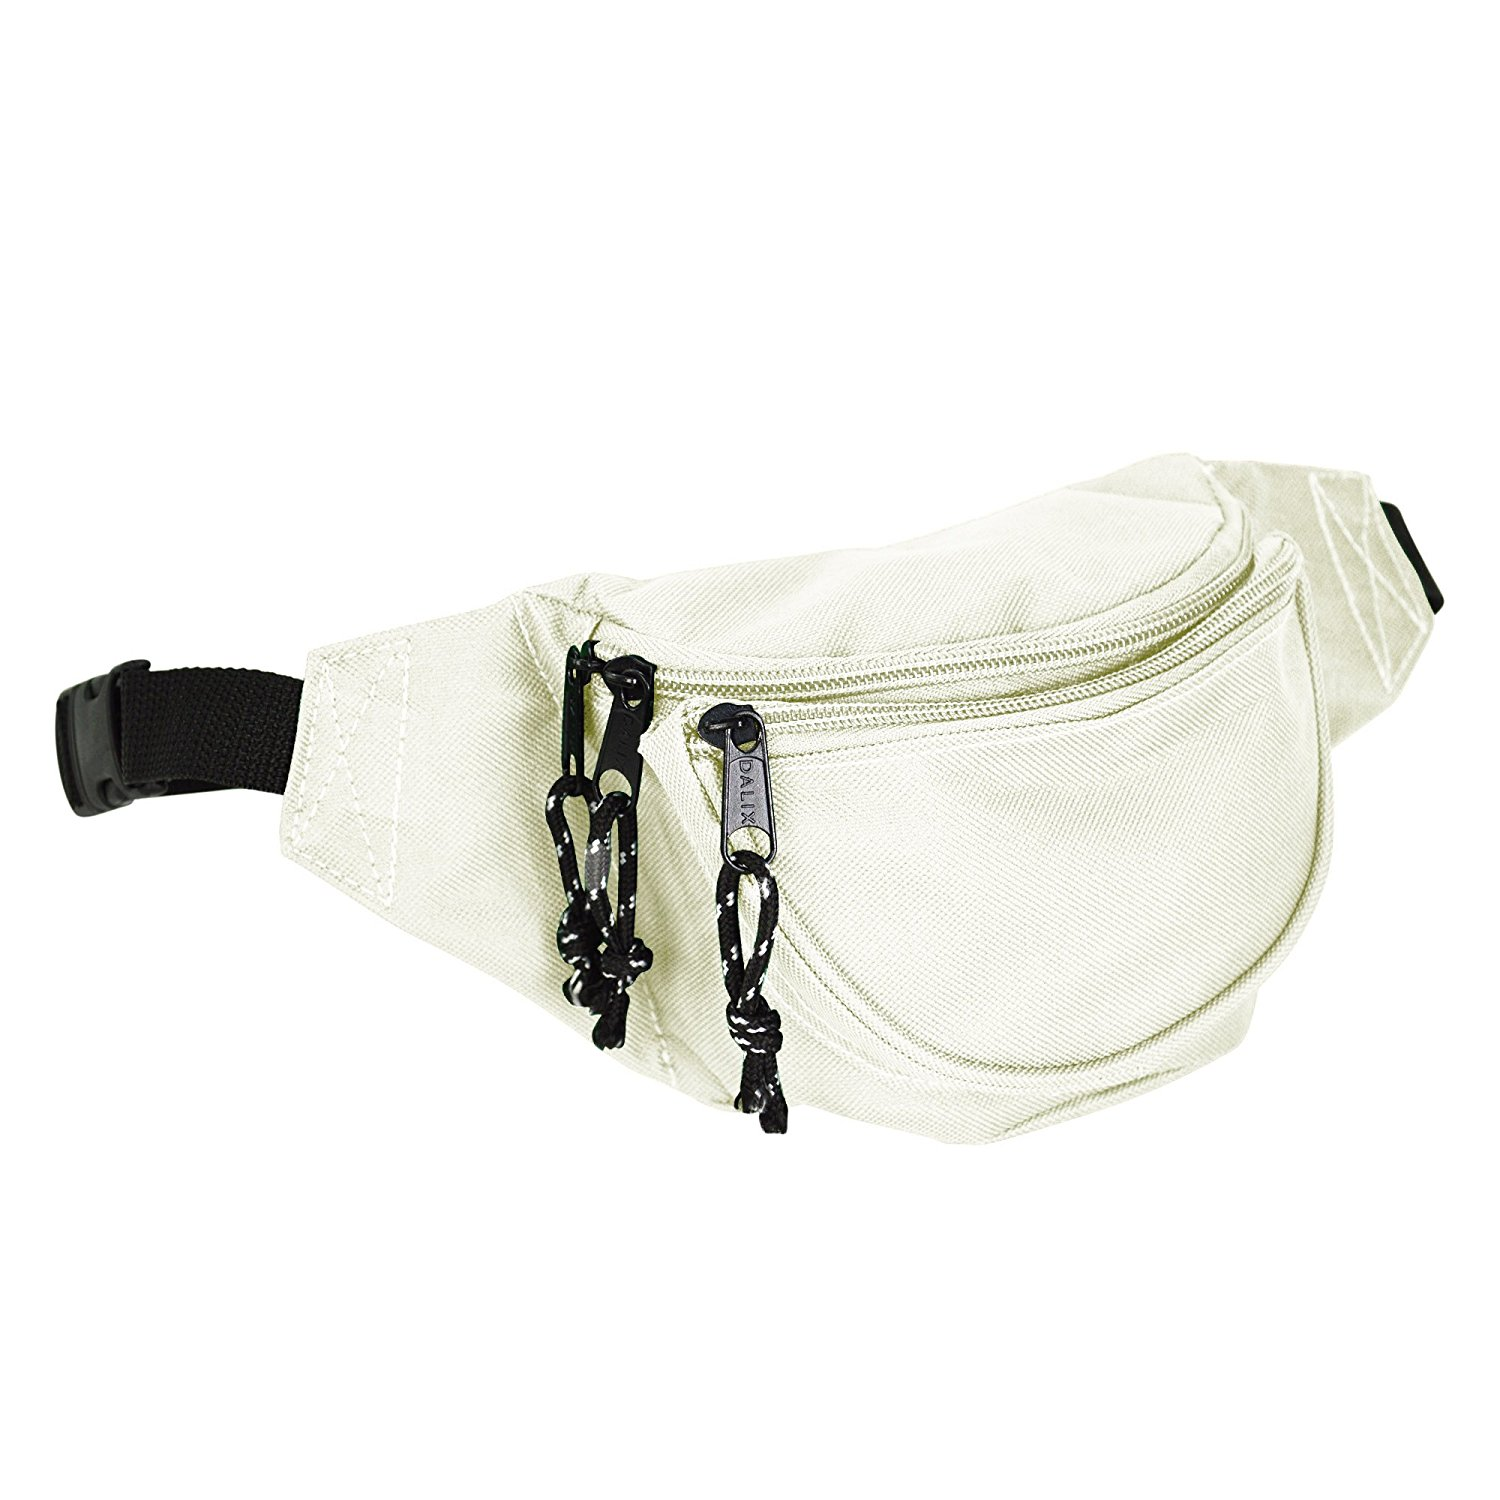 06051985955b Cheap Concealment Pack, find Concealment Pack deals on line at ...